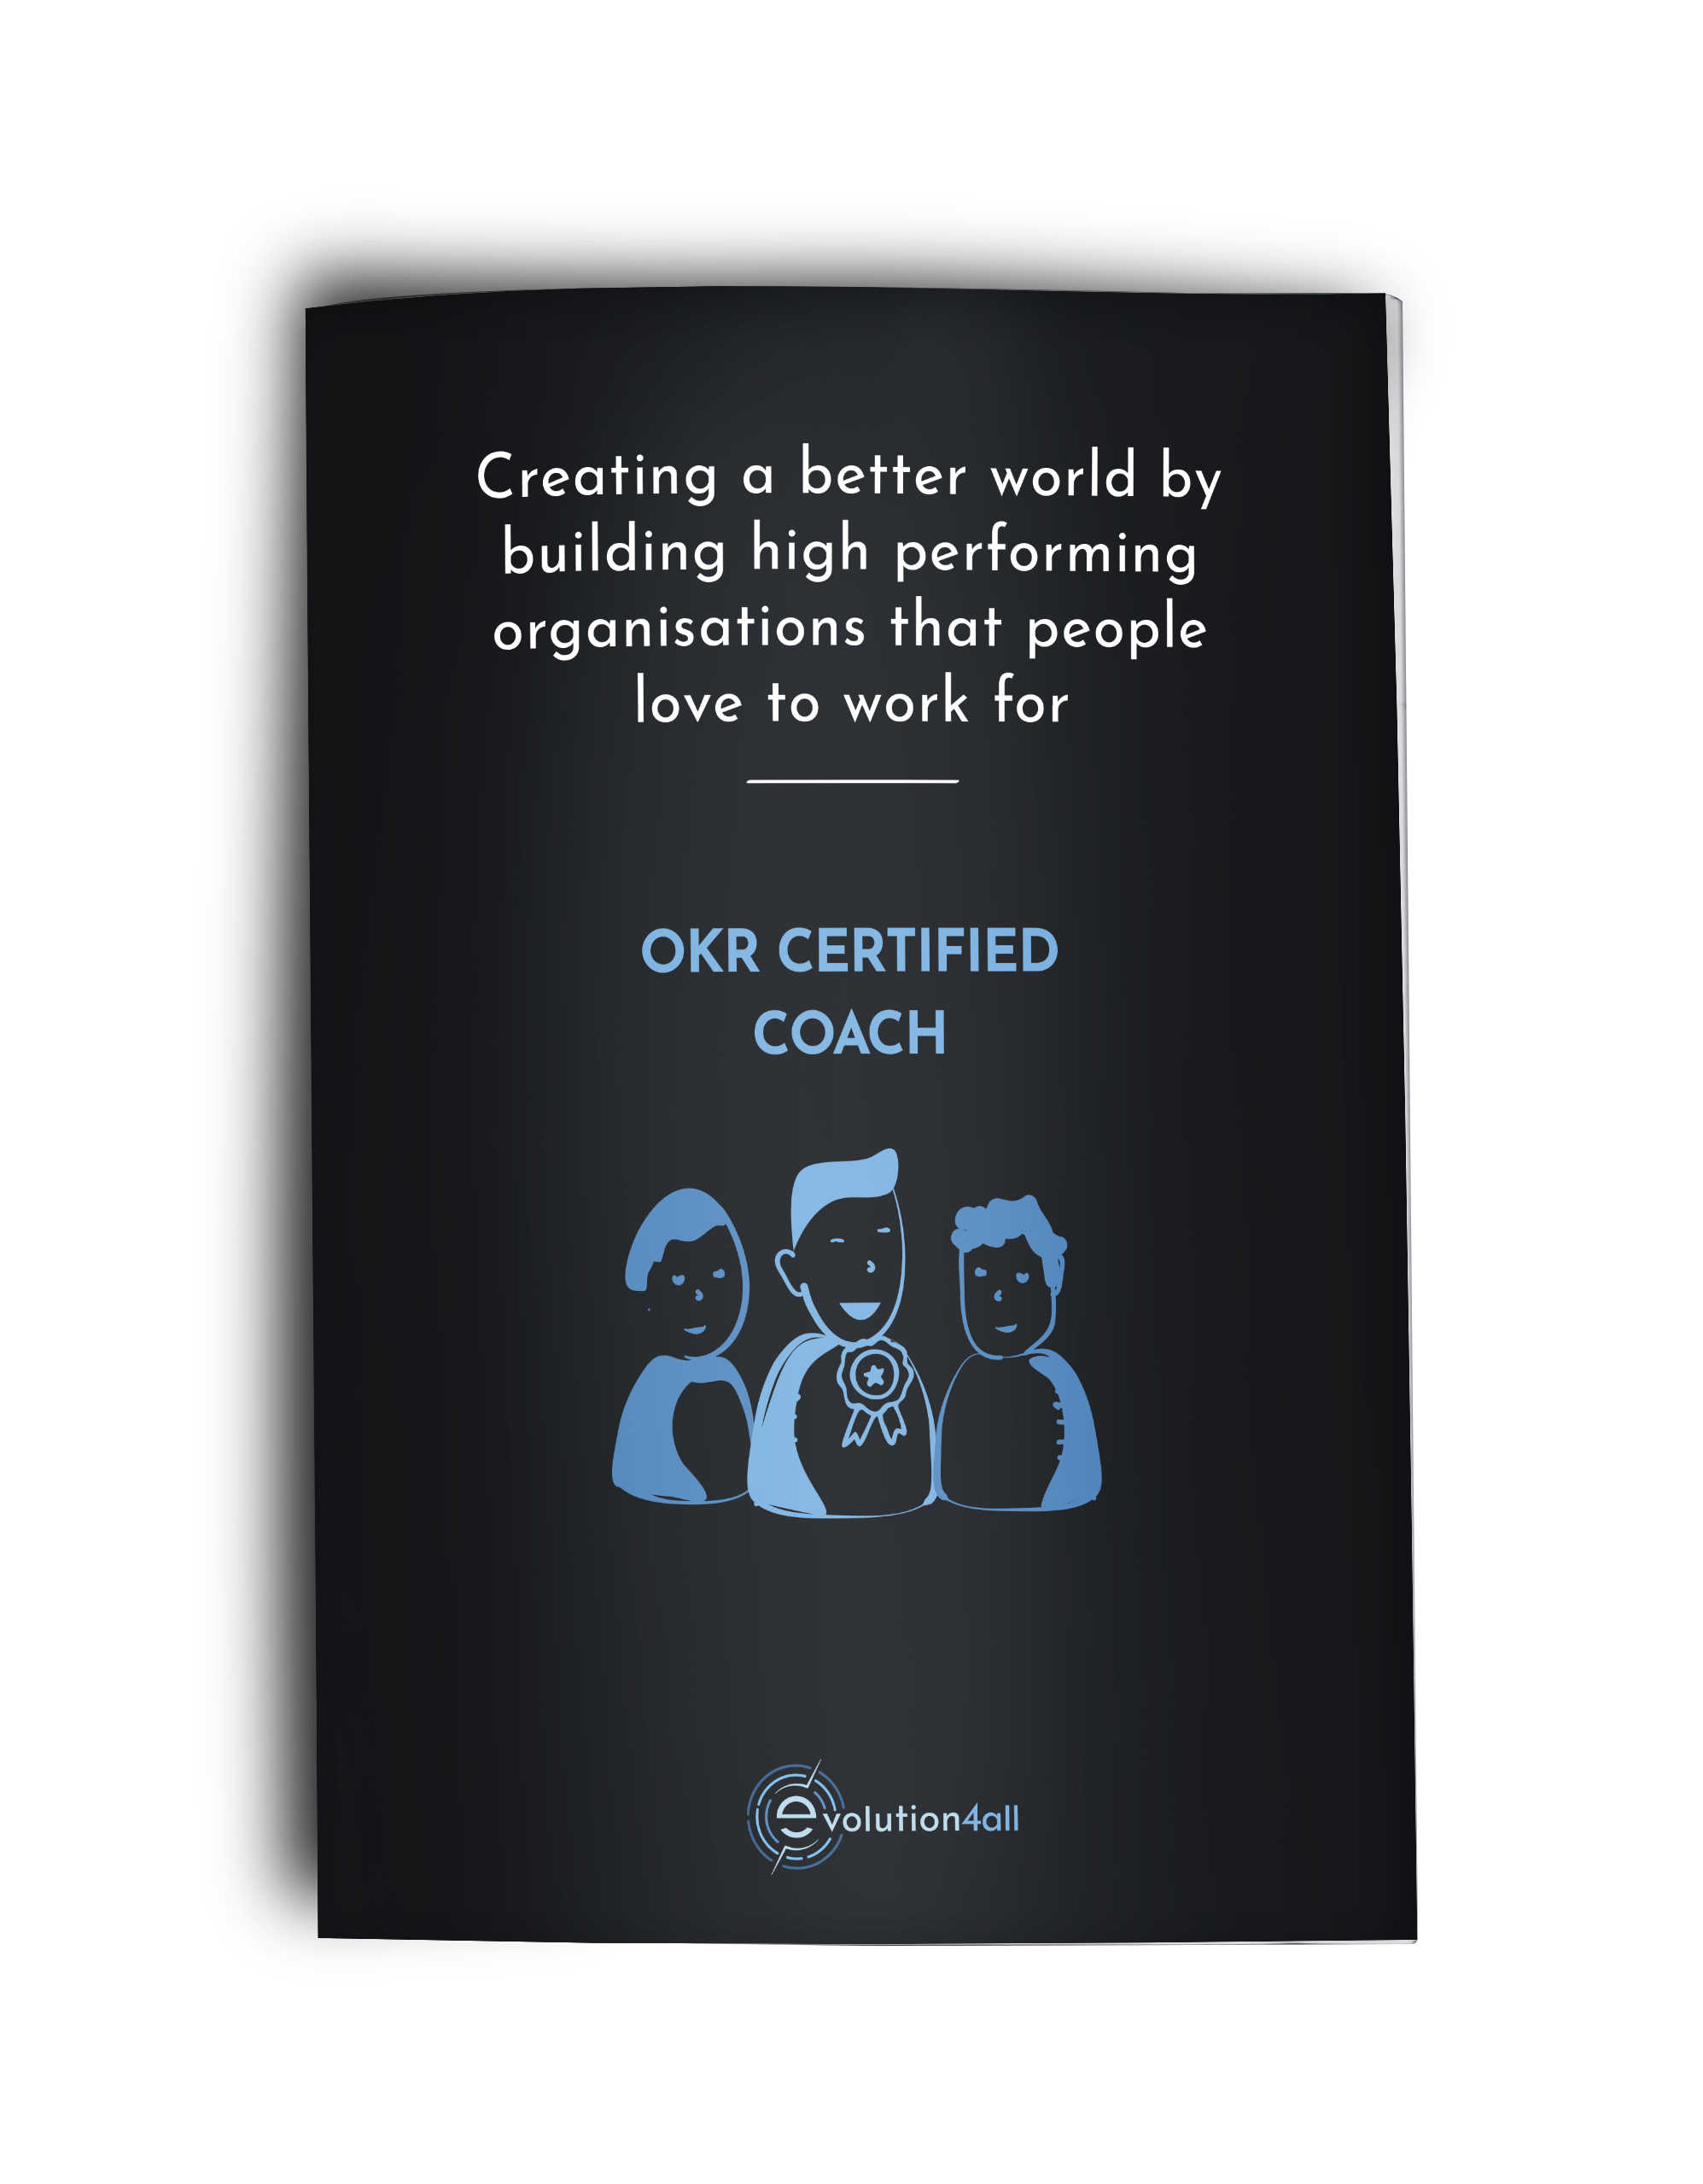 OKR Certified Coach